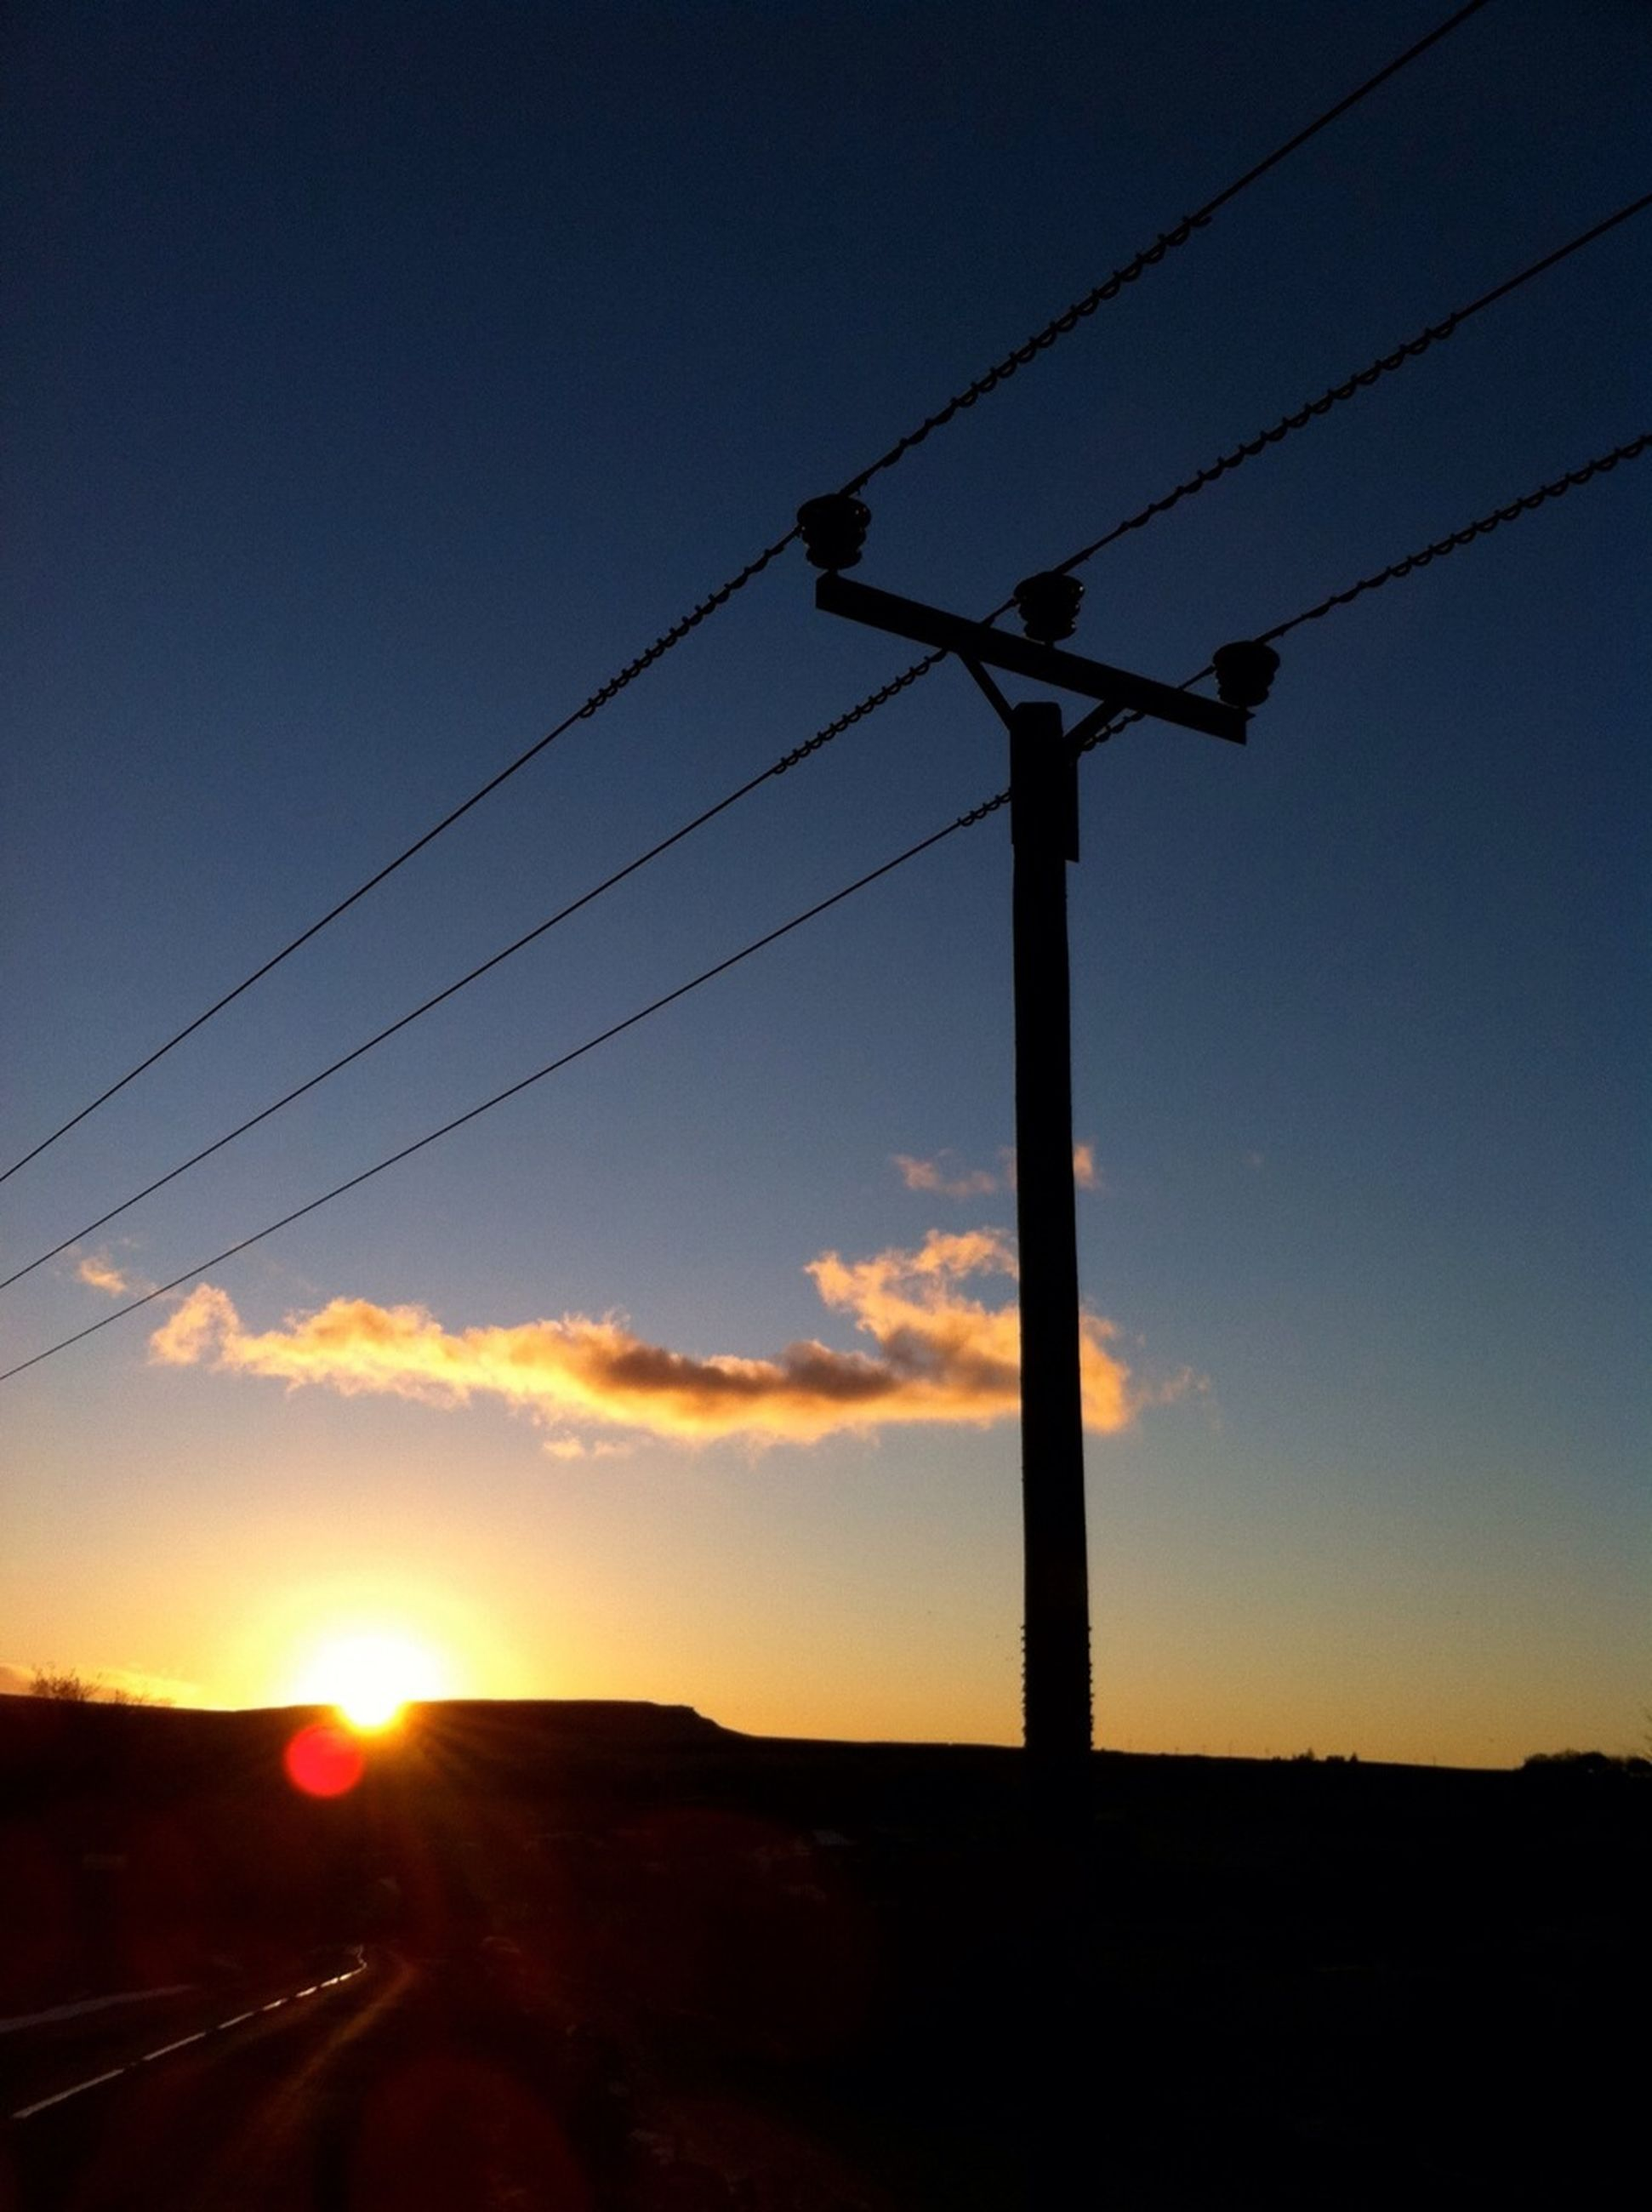 sunset, power line, electricity, silhouette, electricity pylon, power supply, cable, fuel and power generation, sky, connection, technology, sun, power cable, transportation, street light, low angle view, orange color, tranquility, nature, sunlight